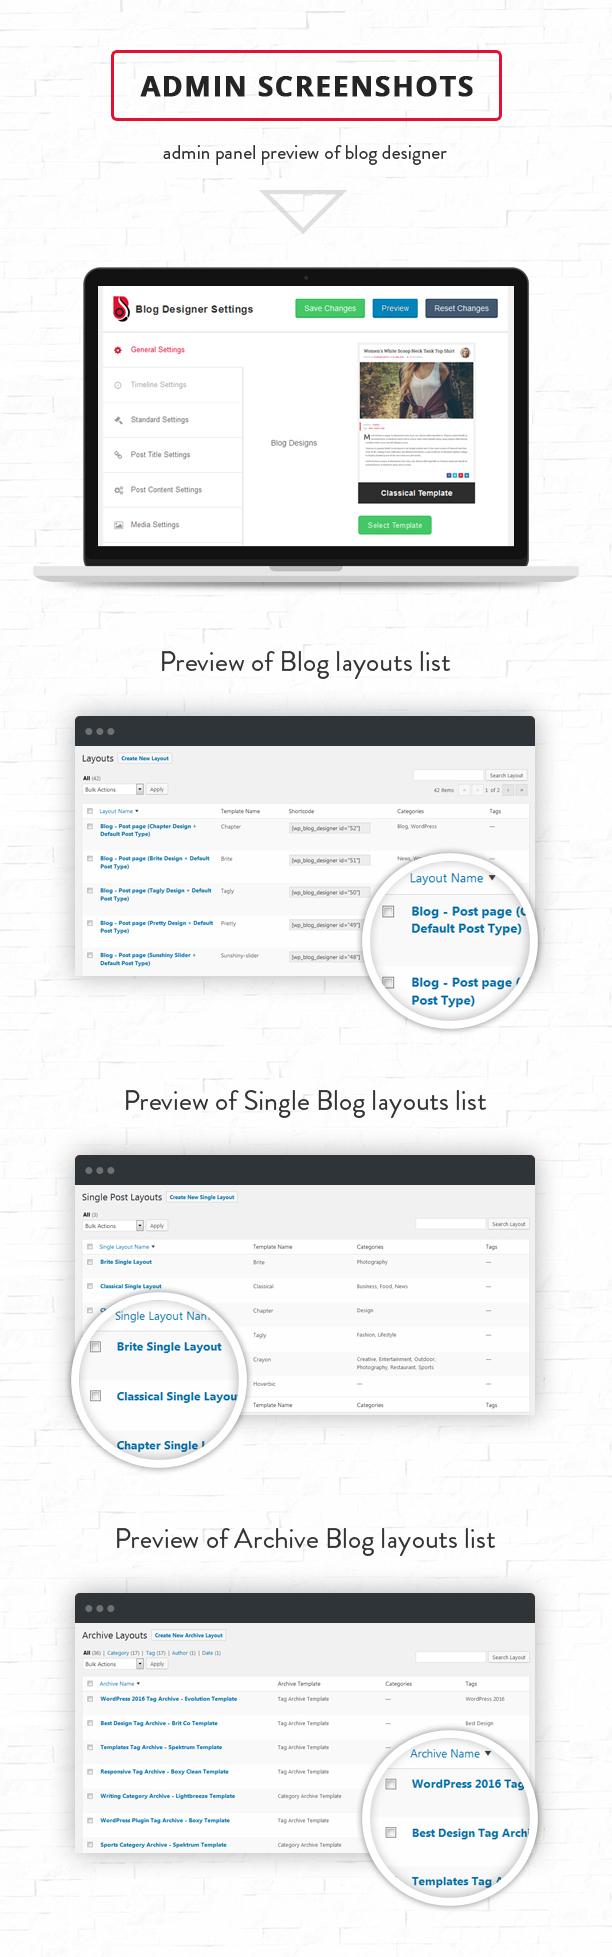 Blog layout settings